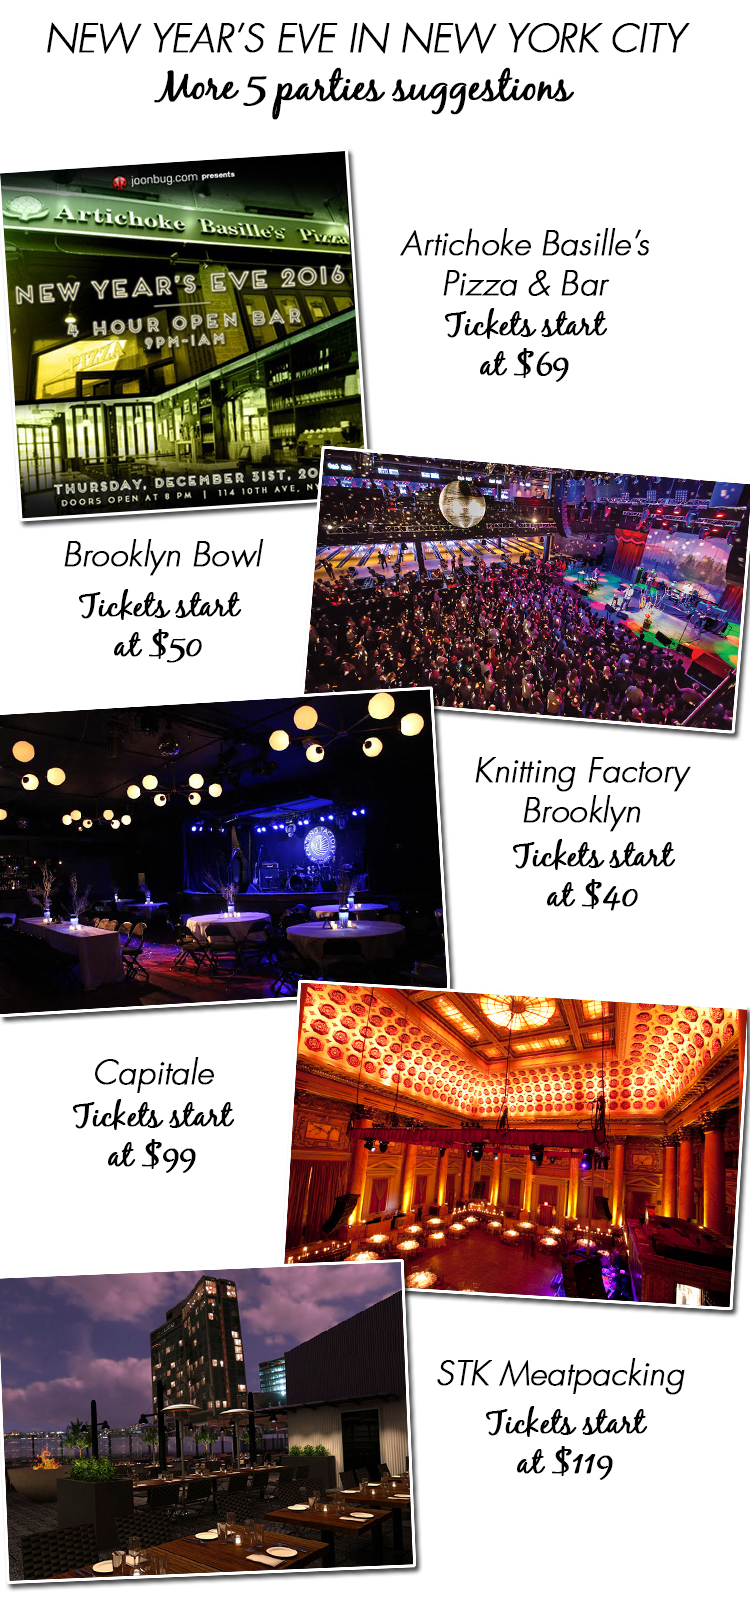 New Year's Eve In New York City: 5 Parties Suggestions